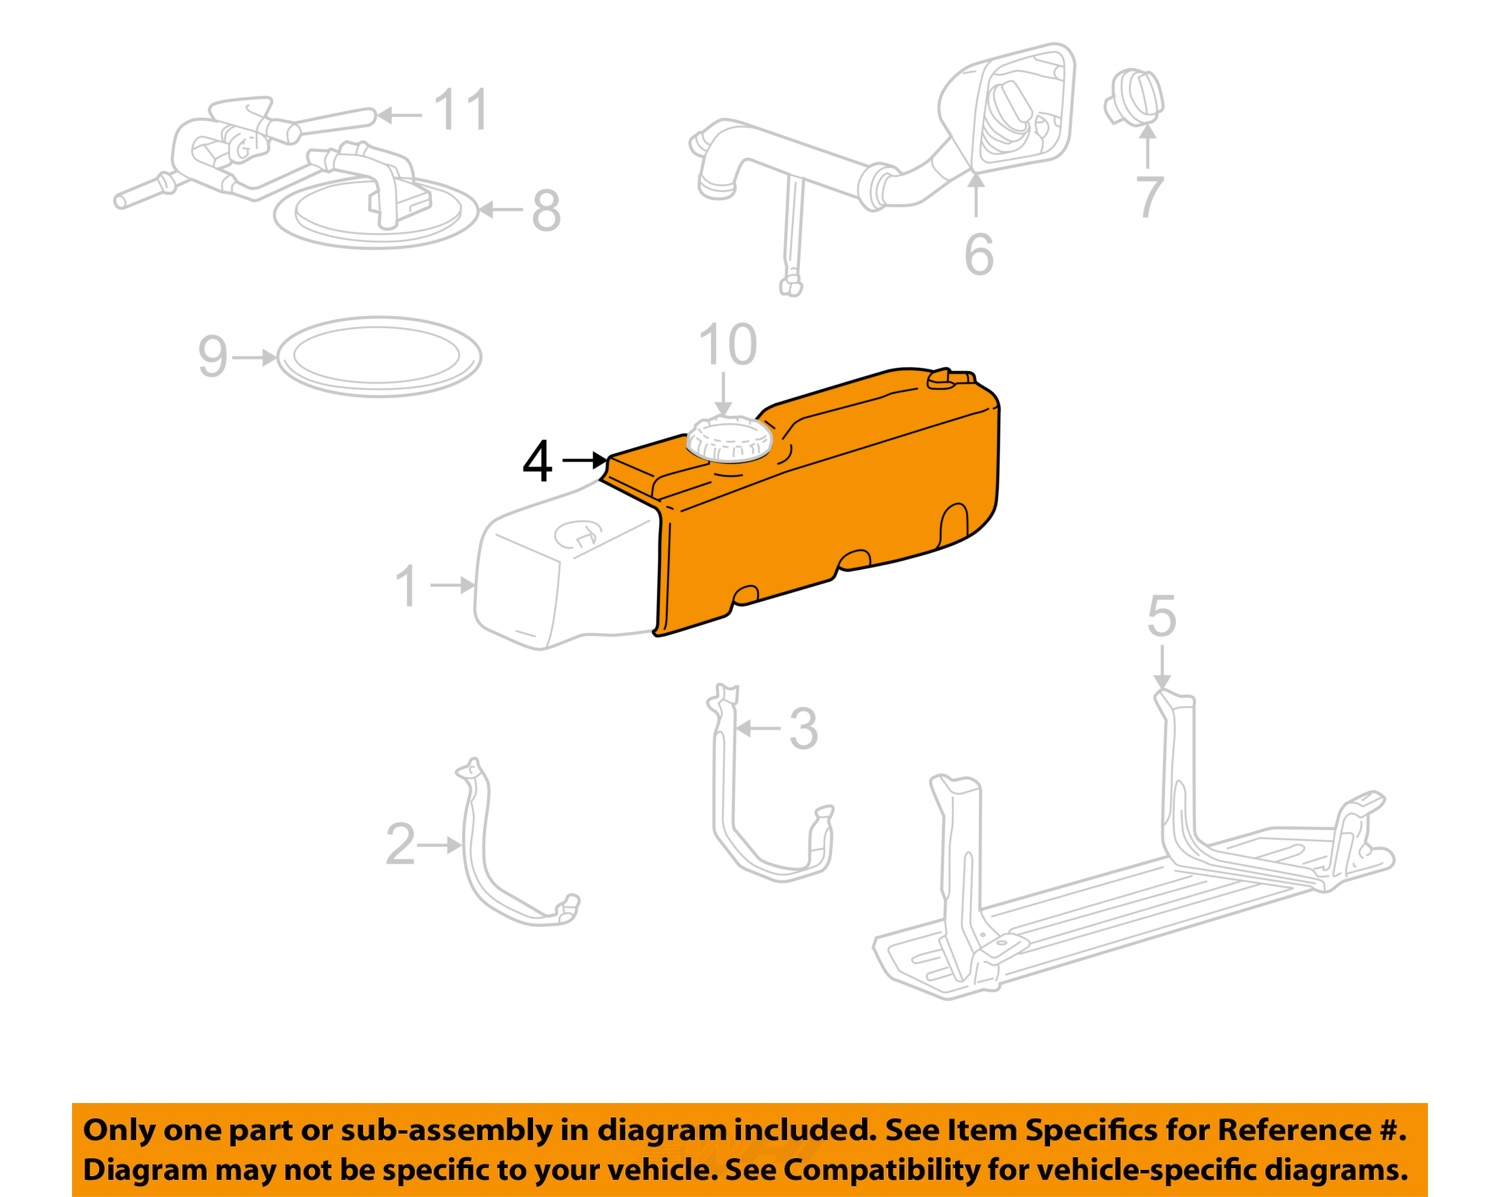 ford oem 98-99 ranger 3.0l-v6 fuel system-fuel gas tank ... 99 ford ranger fuel system diagram 1993 ford ranger fuel system diagram